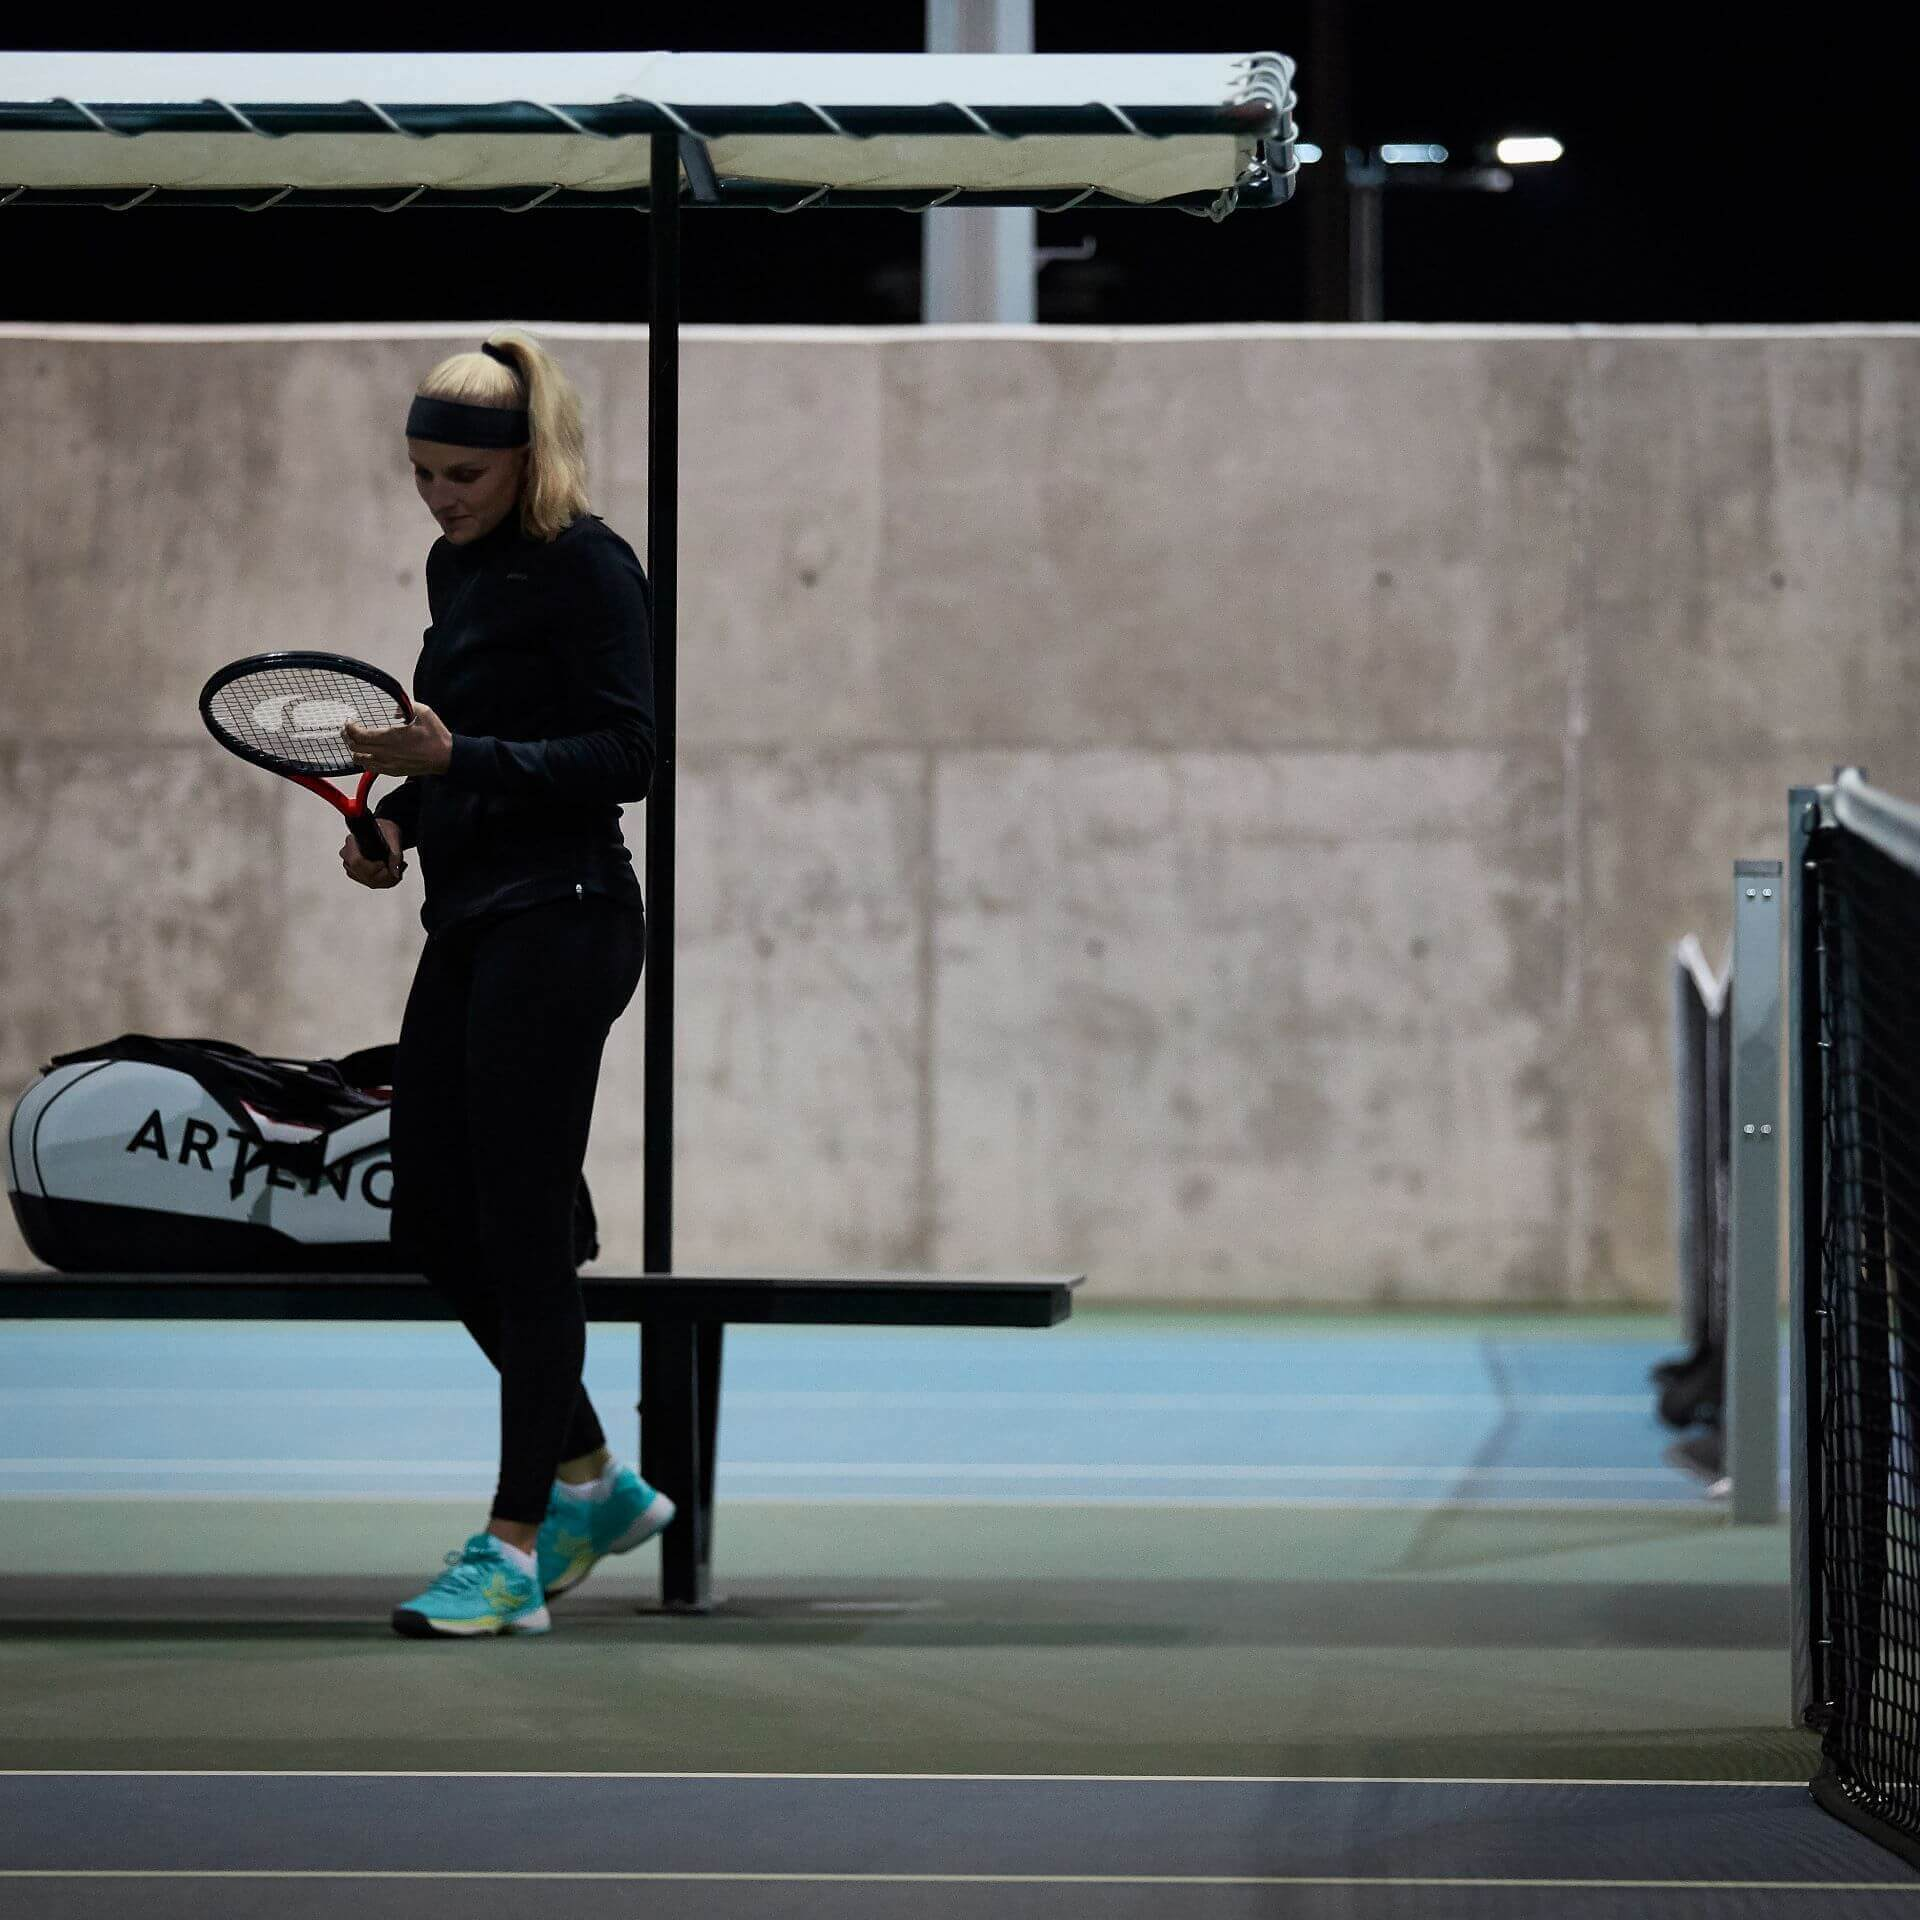 Find Out the Best Places and Practices to Restring Your Racquet